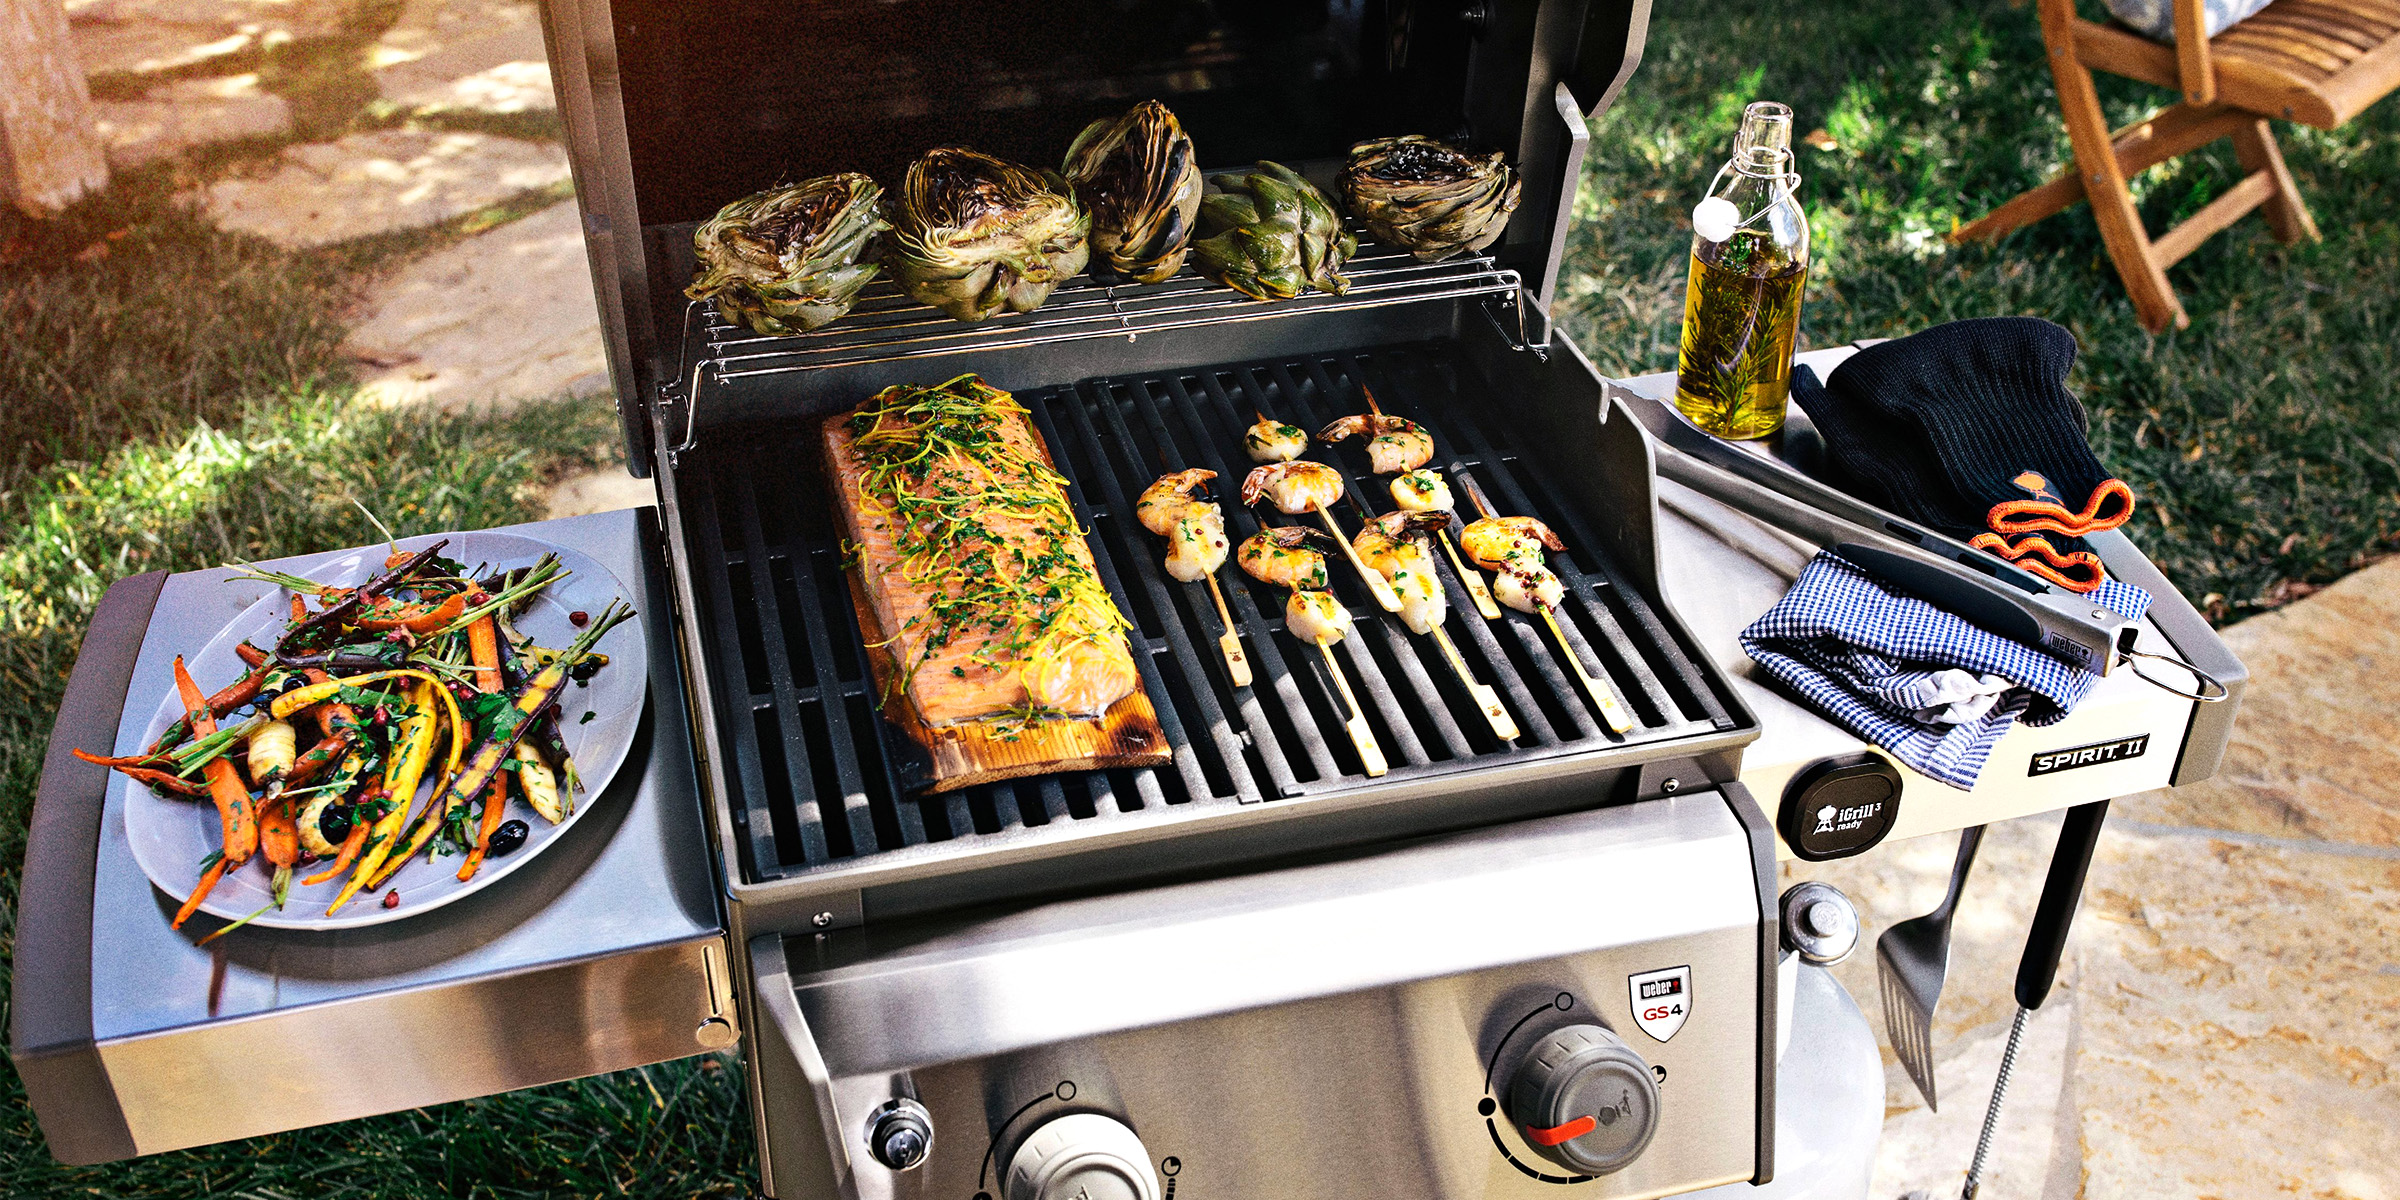 Best Grills To Shop In 2020 According To Experts